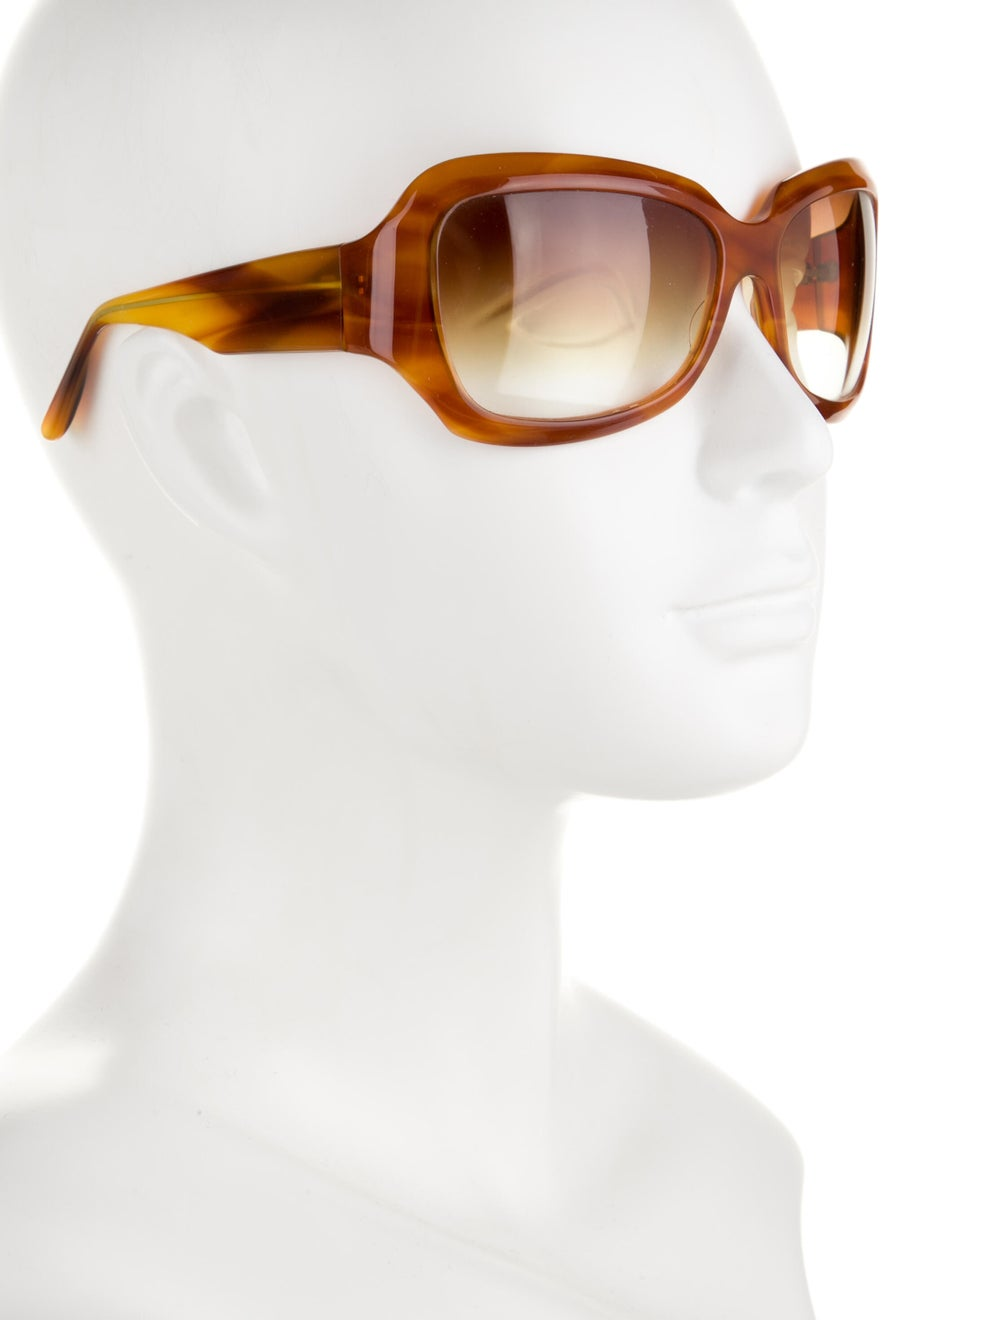 Oliver Peoples Athena Acetate Sunglasses Brown - image 4